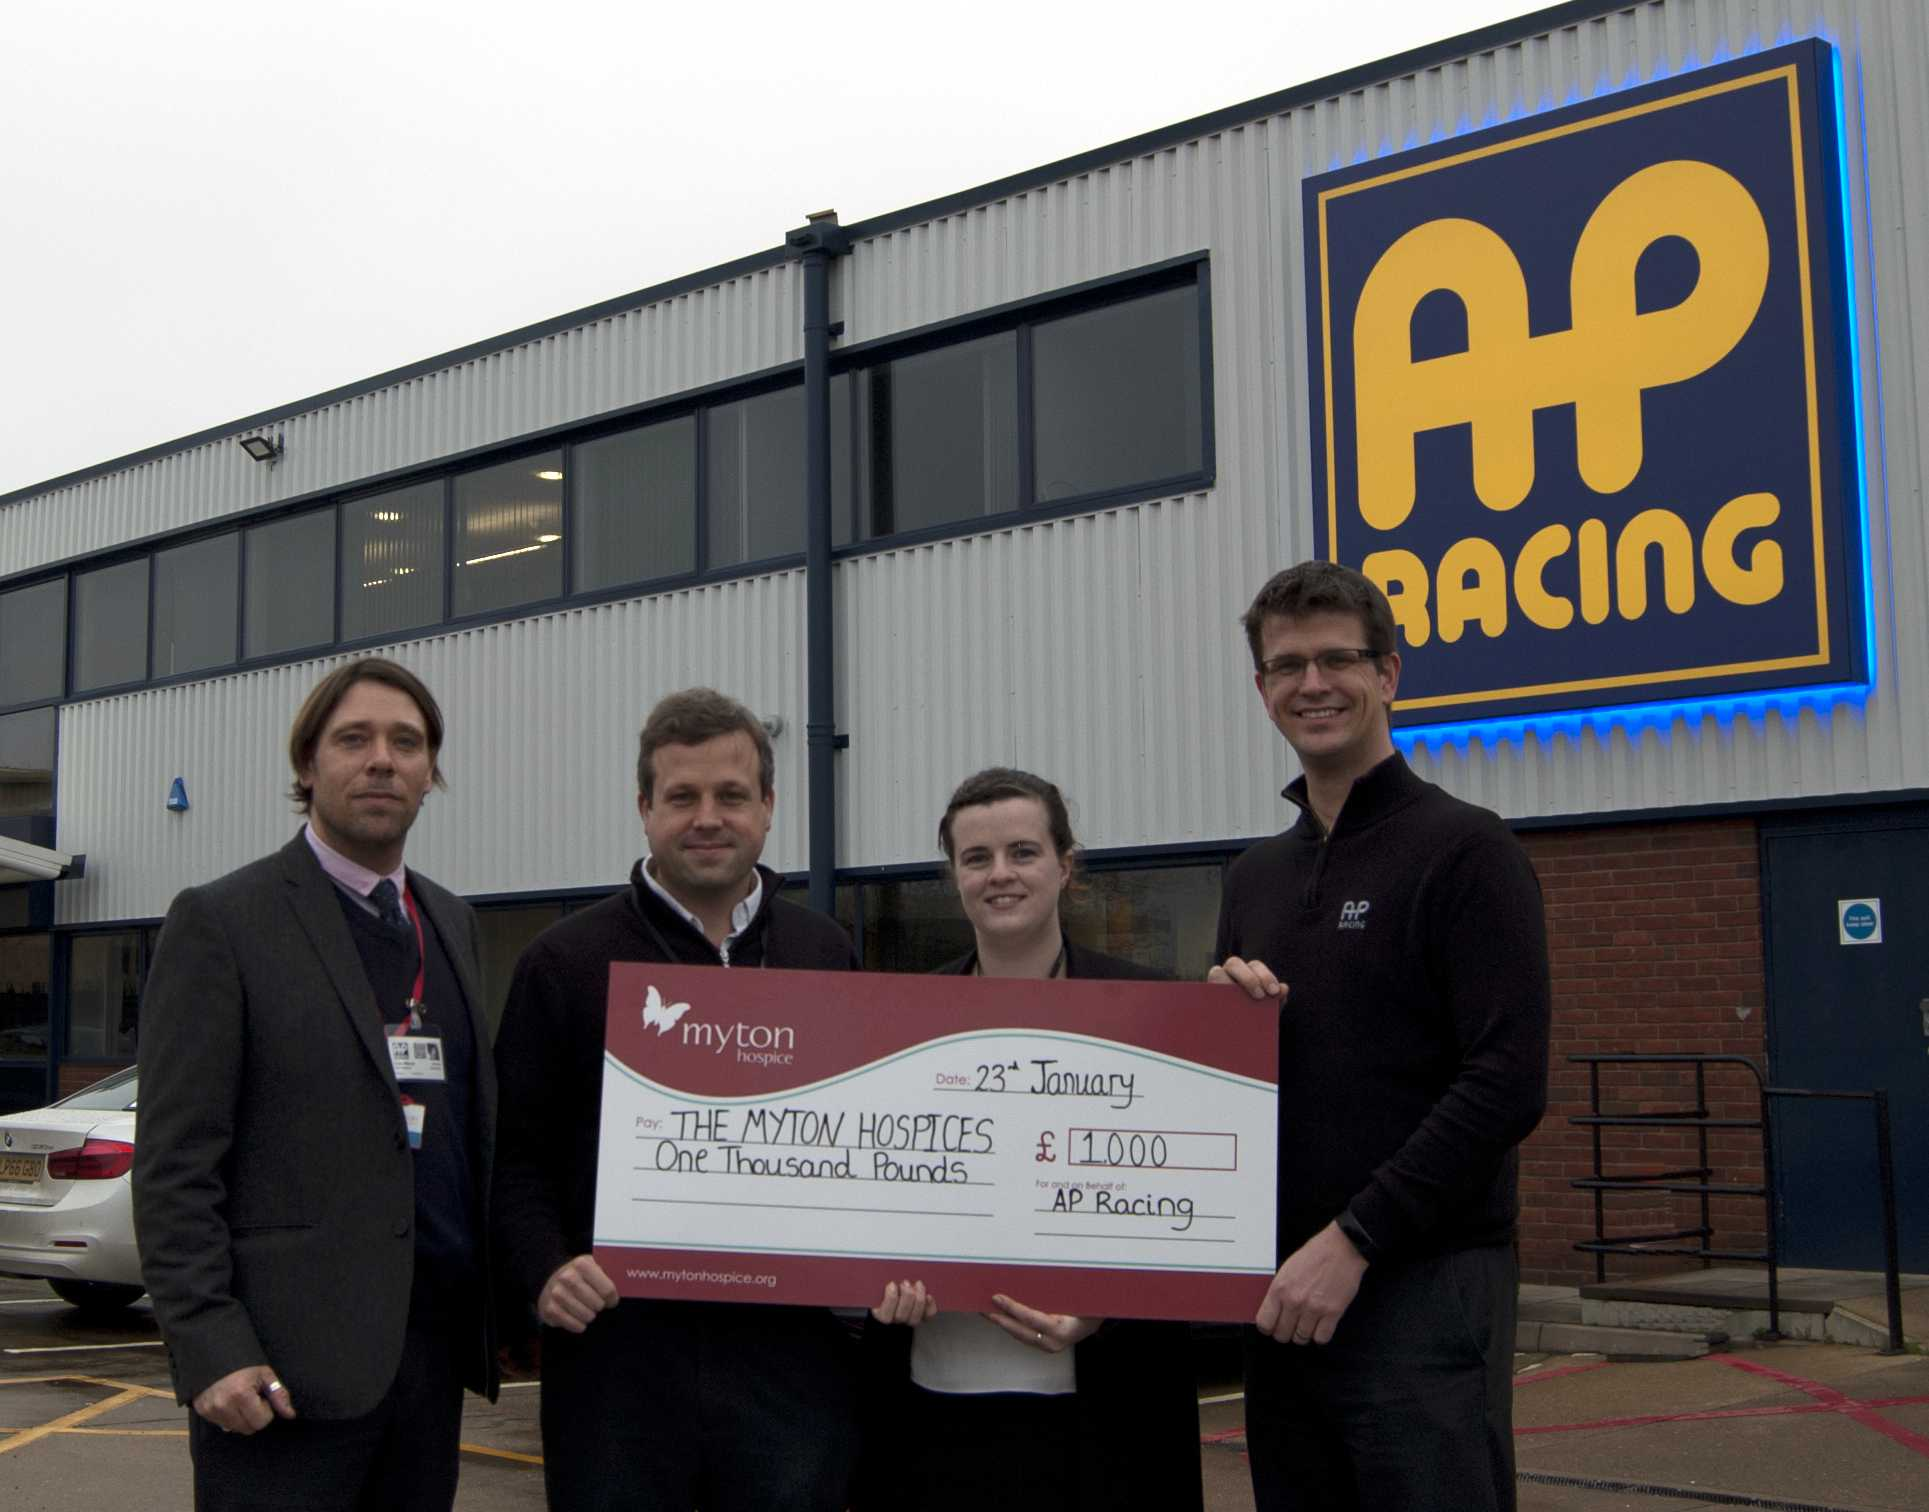 AP Racing supporting Myton Hospice - Featured Image